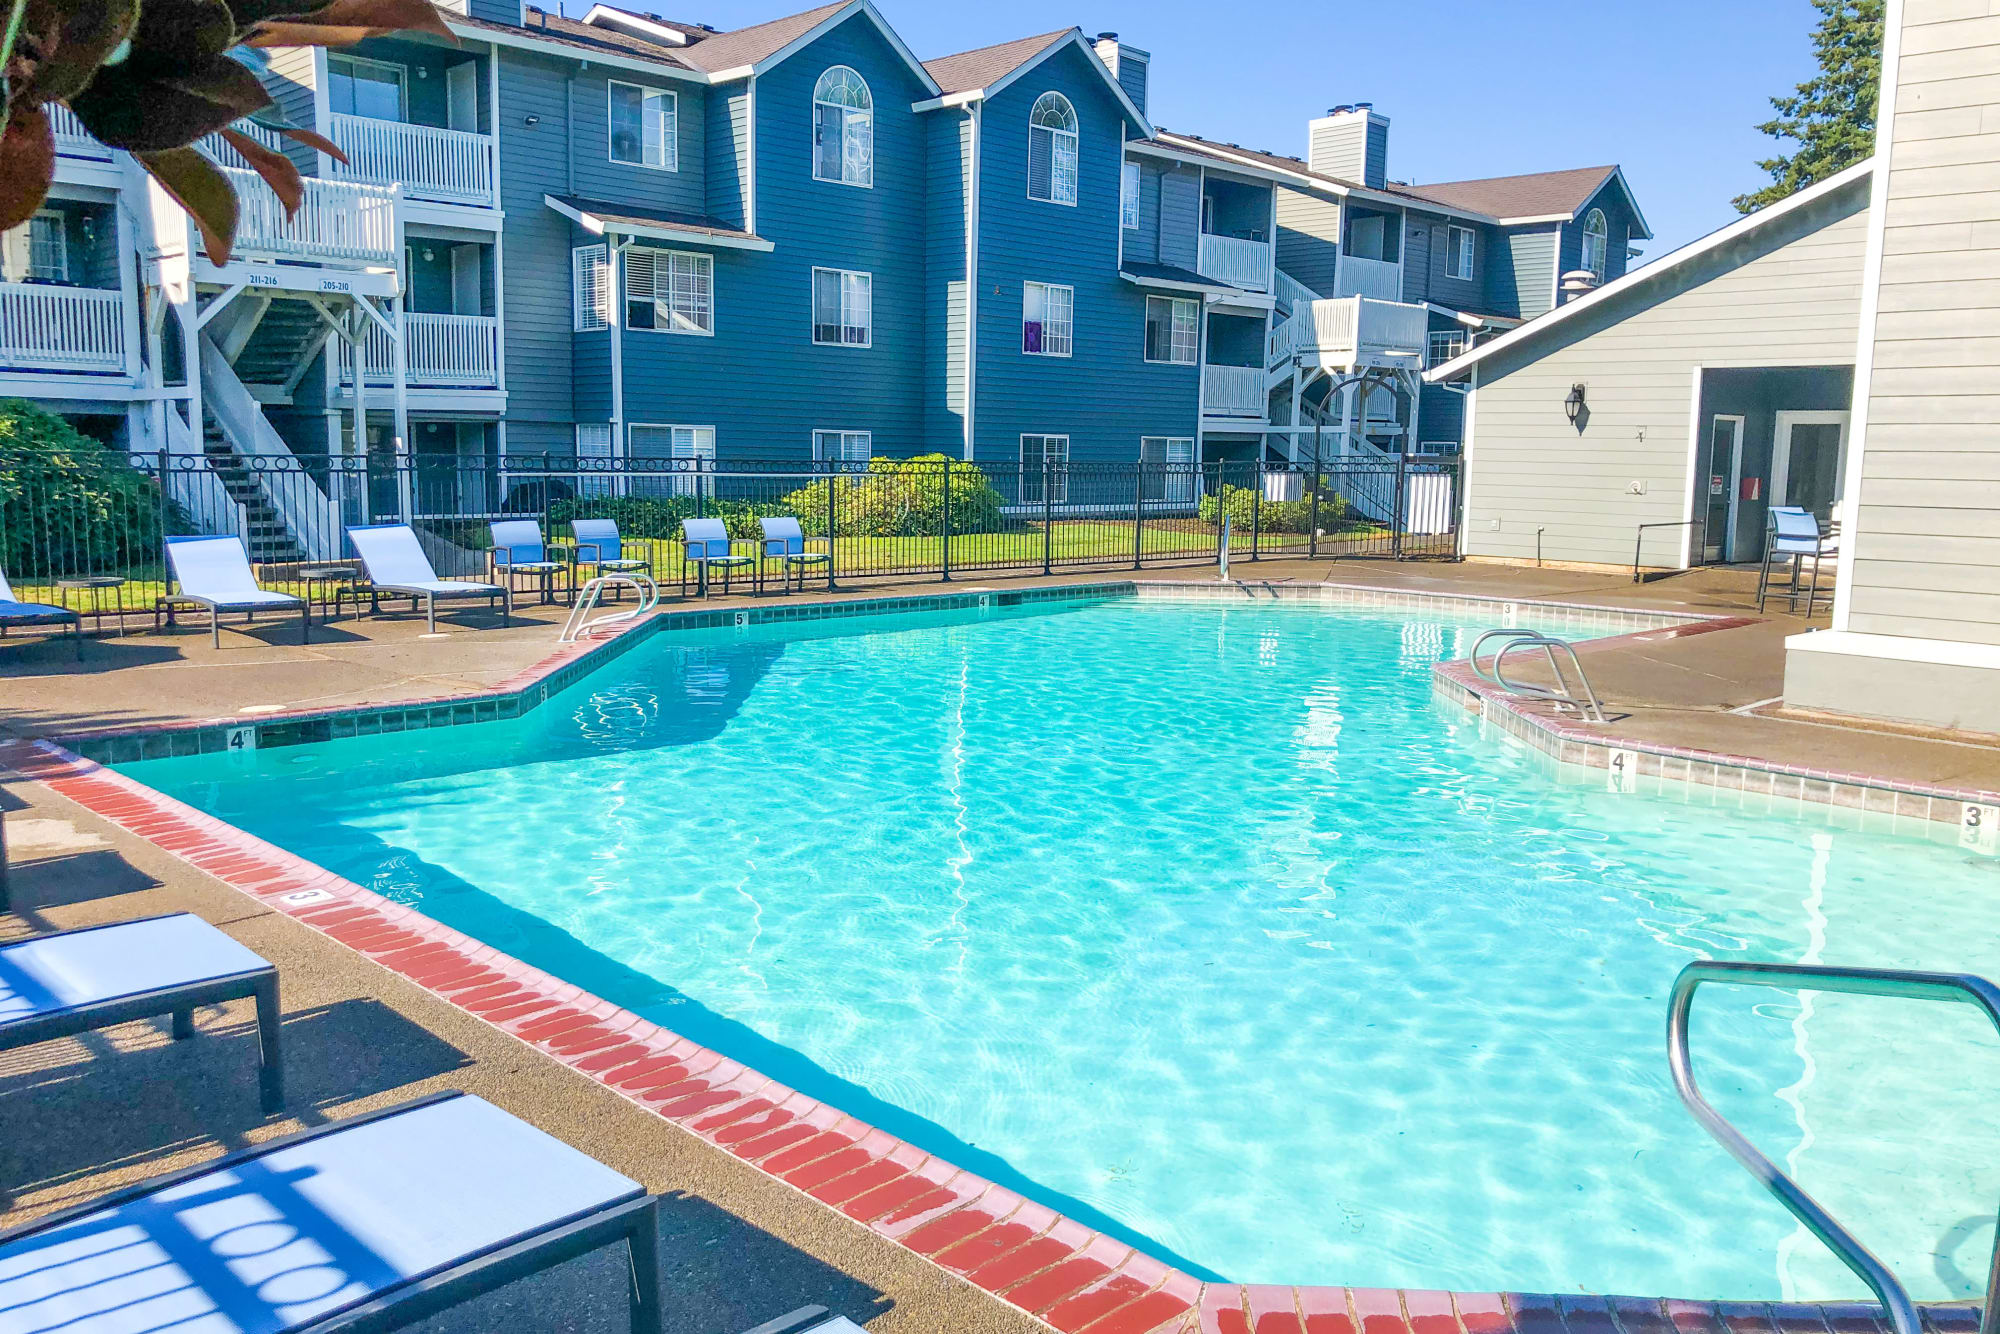 Sparkling pool with new lounge chairs at Walnut Grove Landing Apartments in Vancouver, Washington